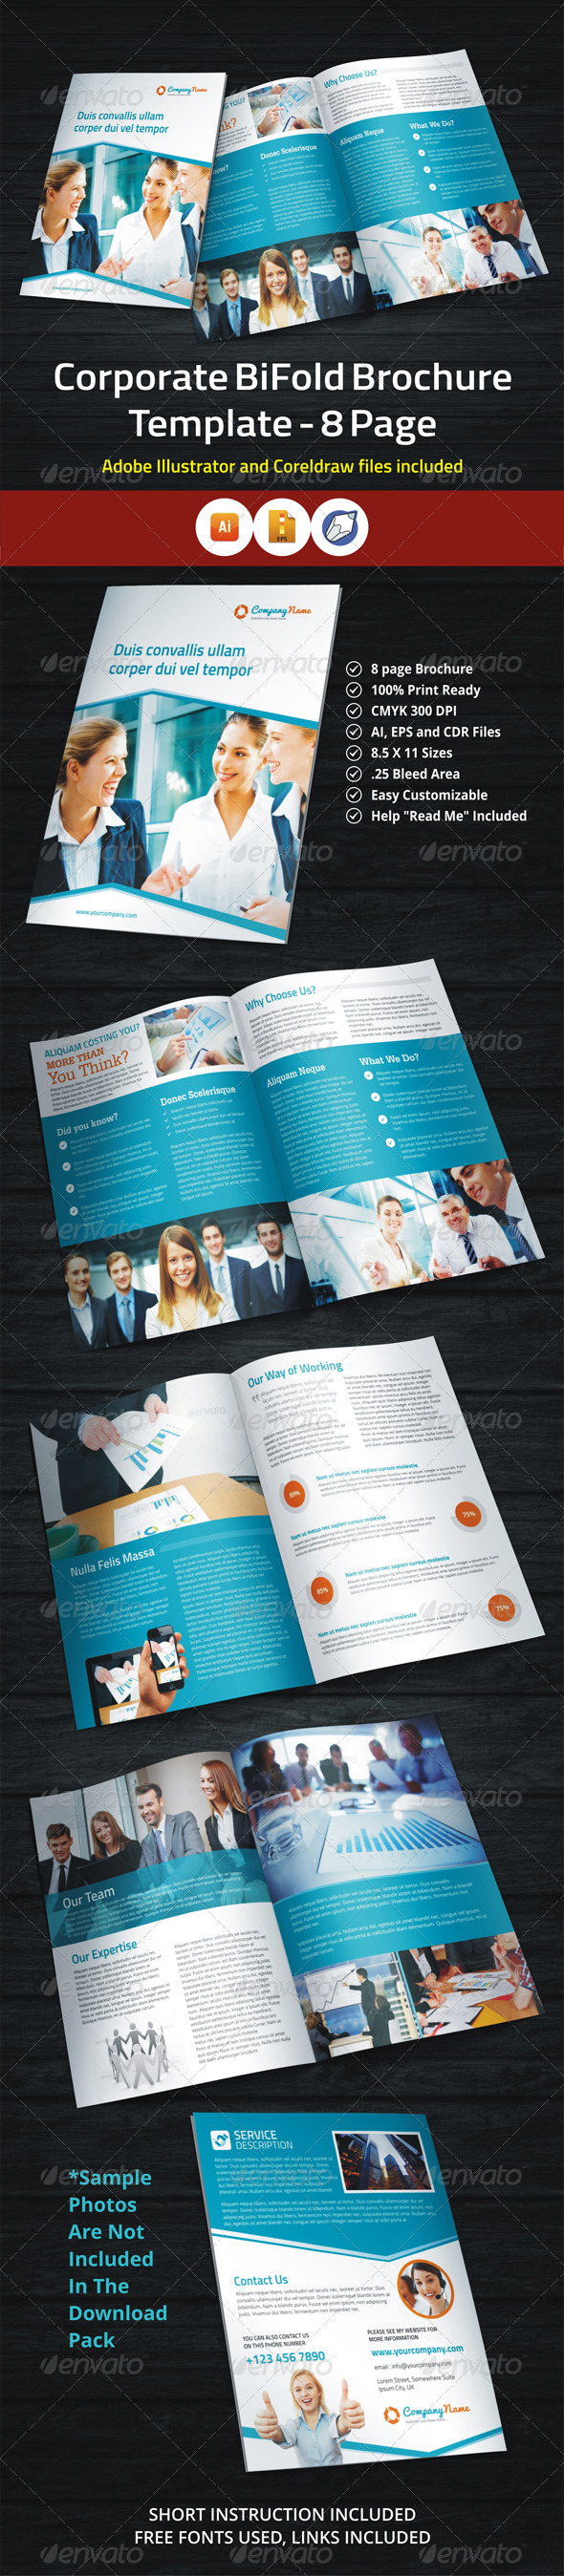 GraphicRiver Corporate BiFold Brochure Template 8 Page 5877138